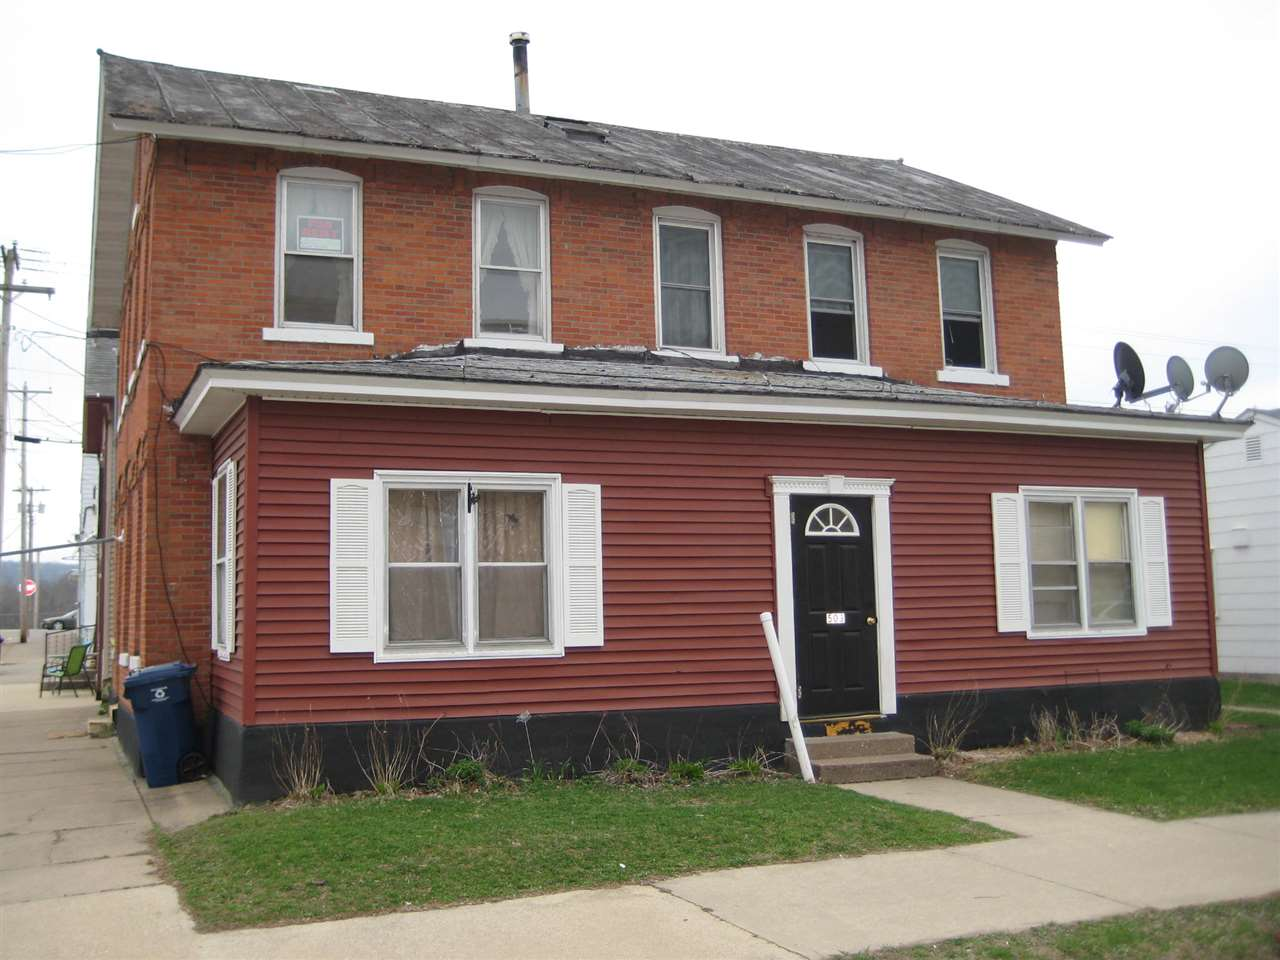 503 S 1st St, Other, IA 52052